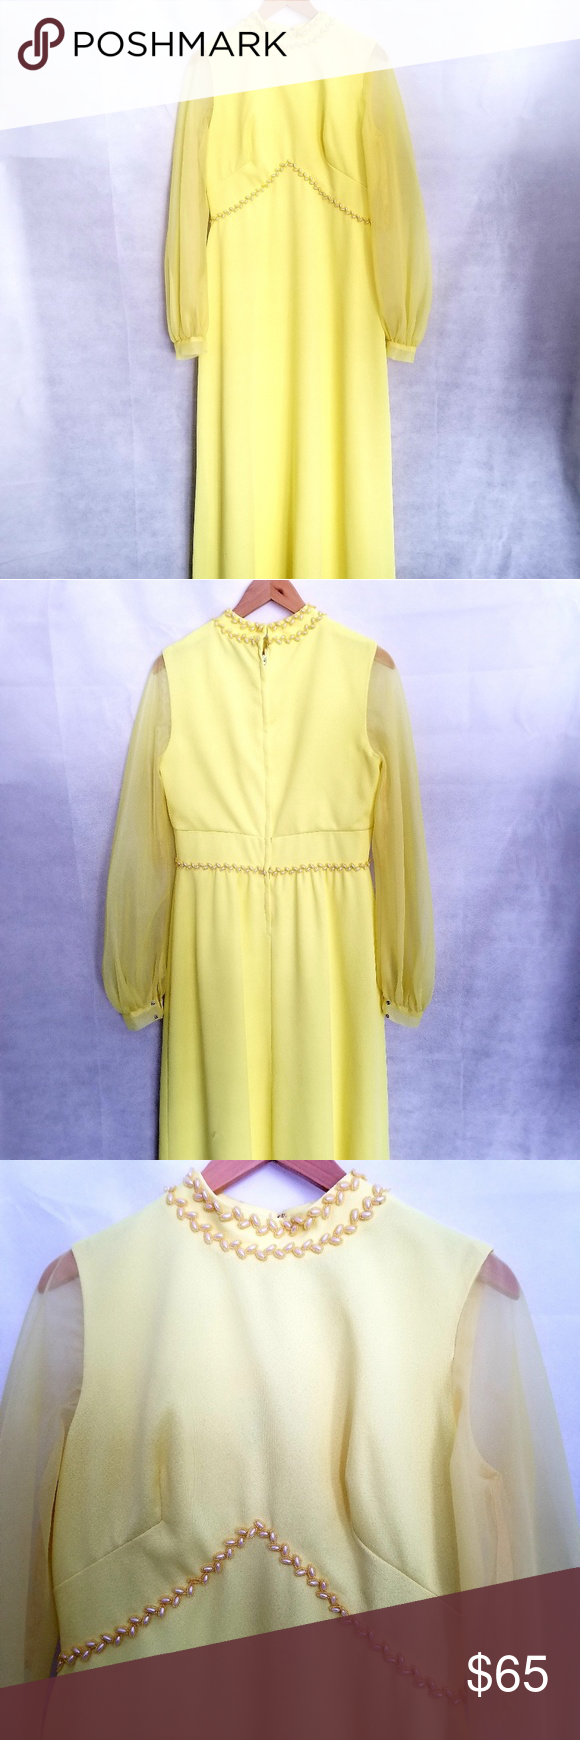 S brides by shirley yellow maxi dress yellow maxi dress